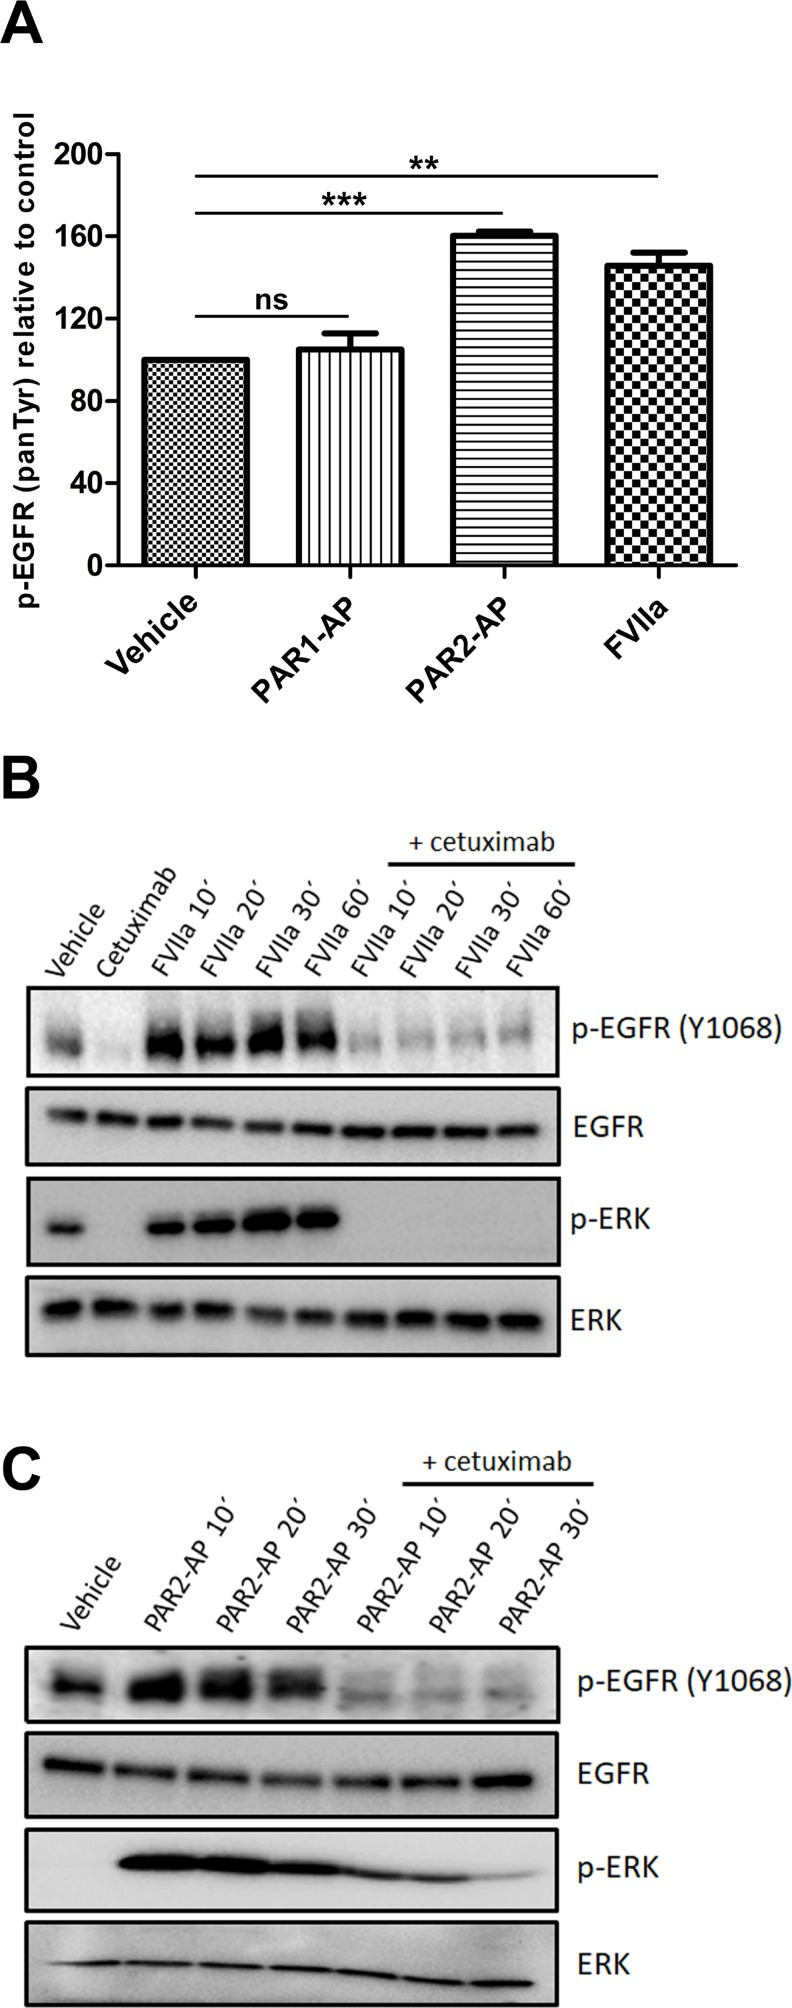 PAR2 transactivates the EGFR-ERK signaling pathway in CASKI cells ( A ) CASKI cells were starved for 16 h followed by stimulation with PAR1-AP (50 µM), PAR2-AP (50 µM) or FVIIa (20 nM) for 15 minutes. After cell lysis, equal amounts of protein were used for the determination of p-EGFR using the PathScan Phospho-EGF Receptor (panTyr) Sandwich ELISA Kit. Values represent mean + SD of three independent experiments; ns: not significant, ** P